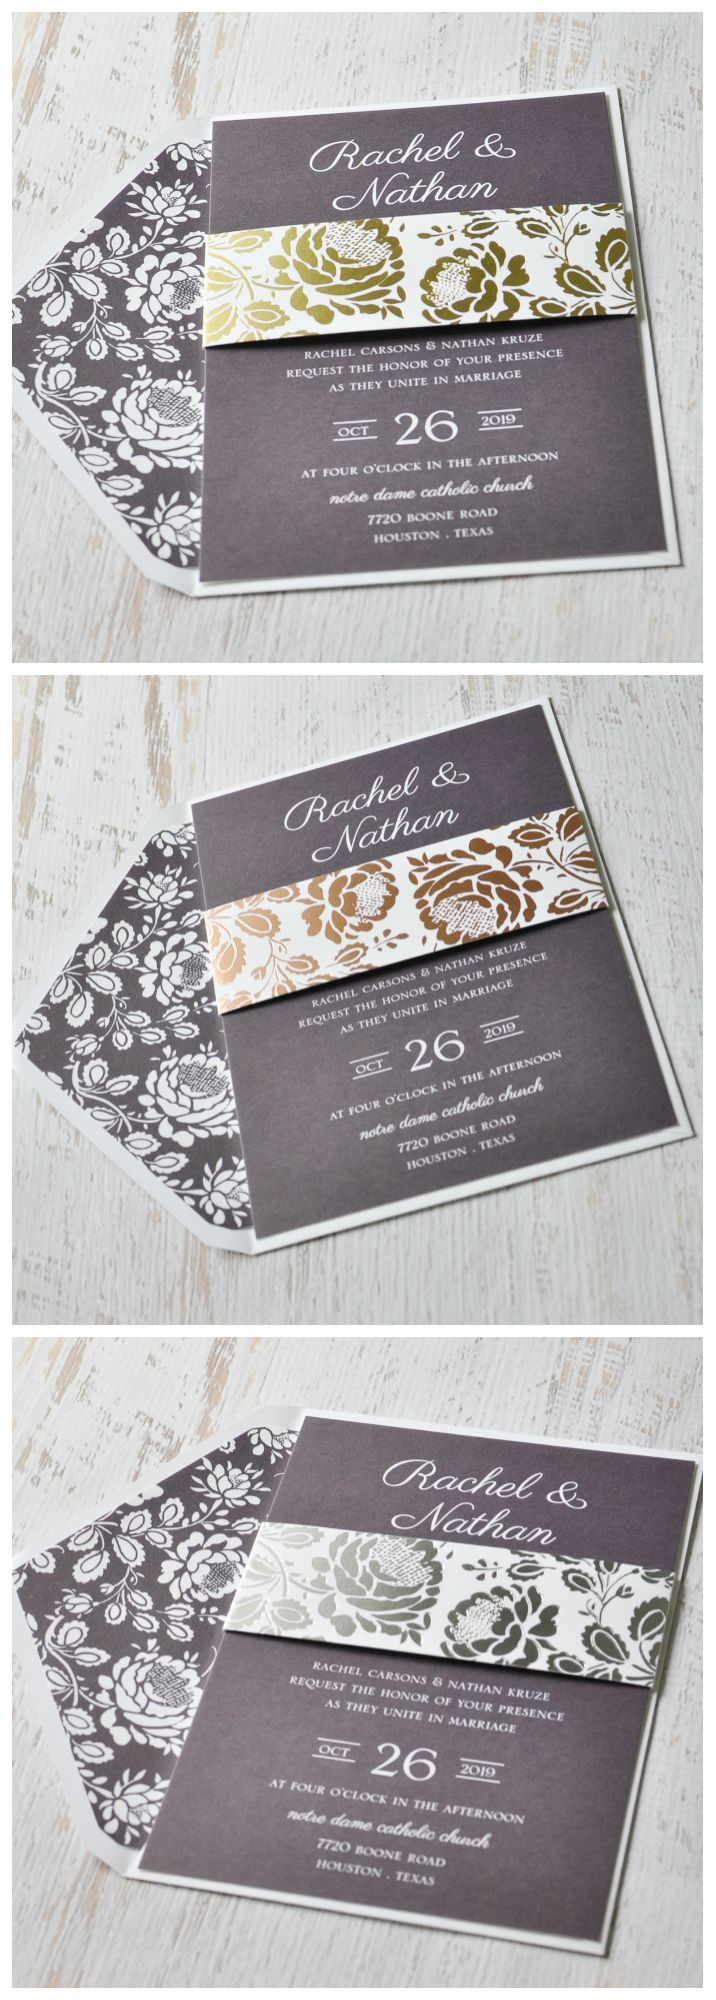 how to address couples on wedding invitations%0A A touch of shine and a lot of style will captivate your wedding guests  This